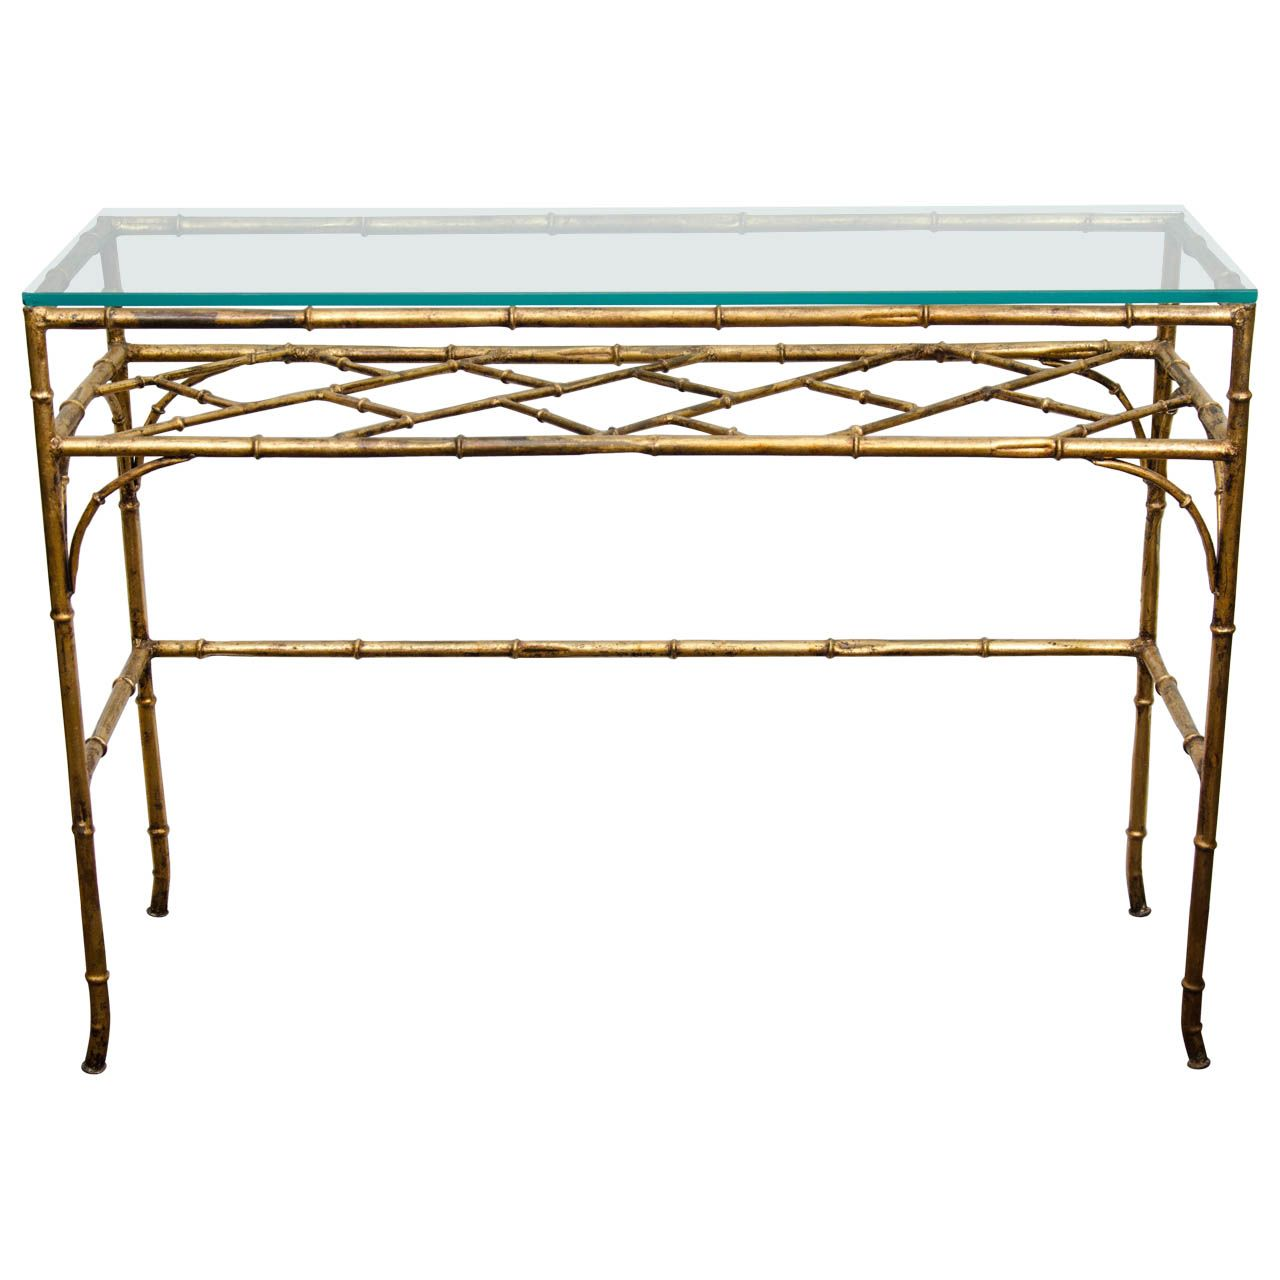 A Mid Century Glass and Faux Bamboo Console Table